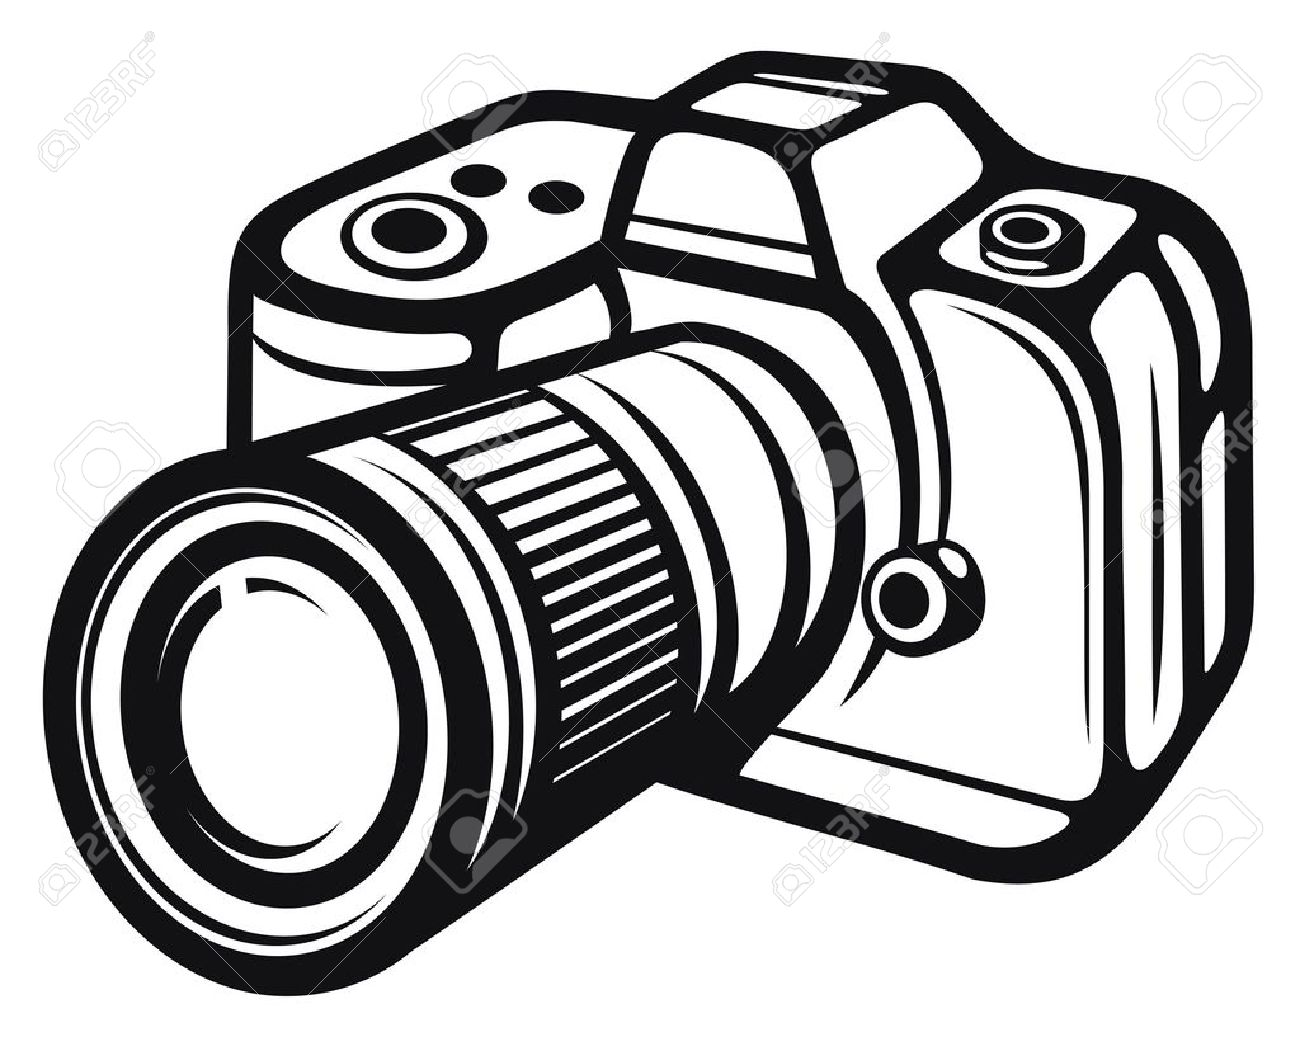 Camera clipart black and white. Free download best